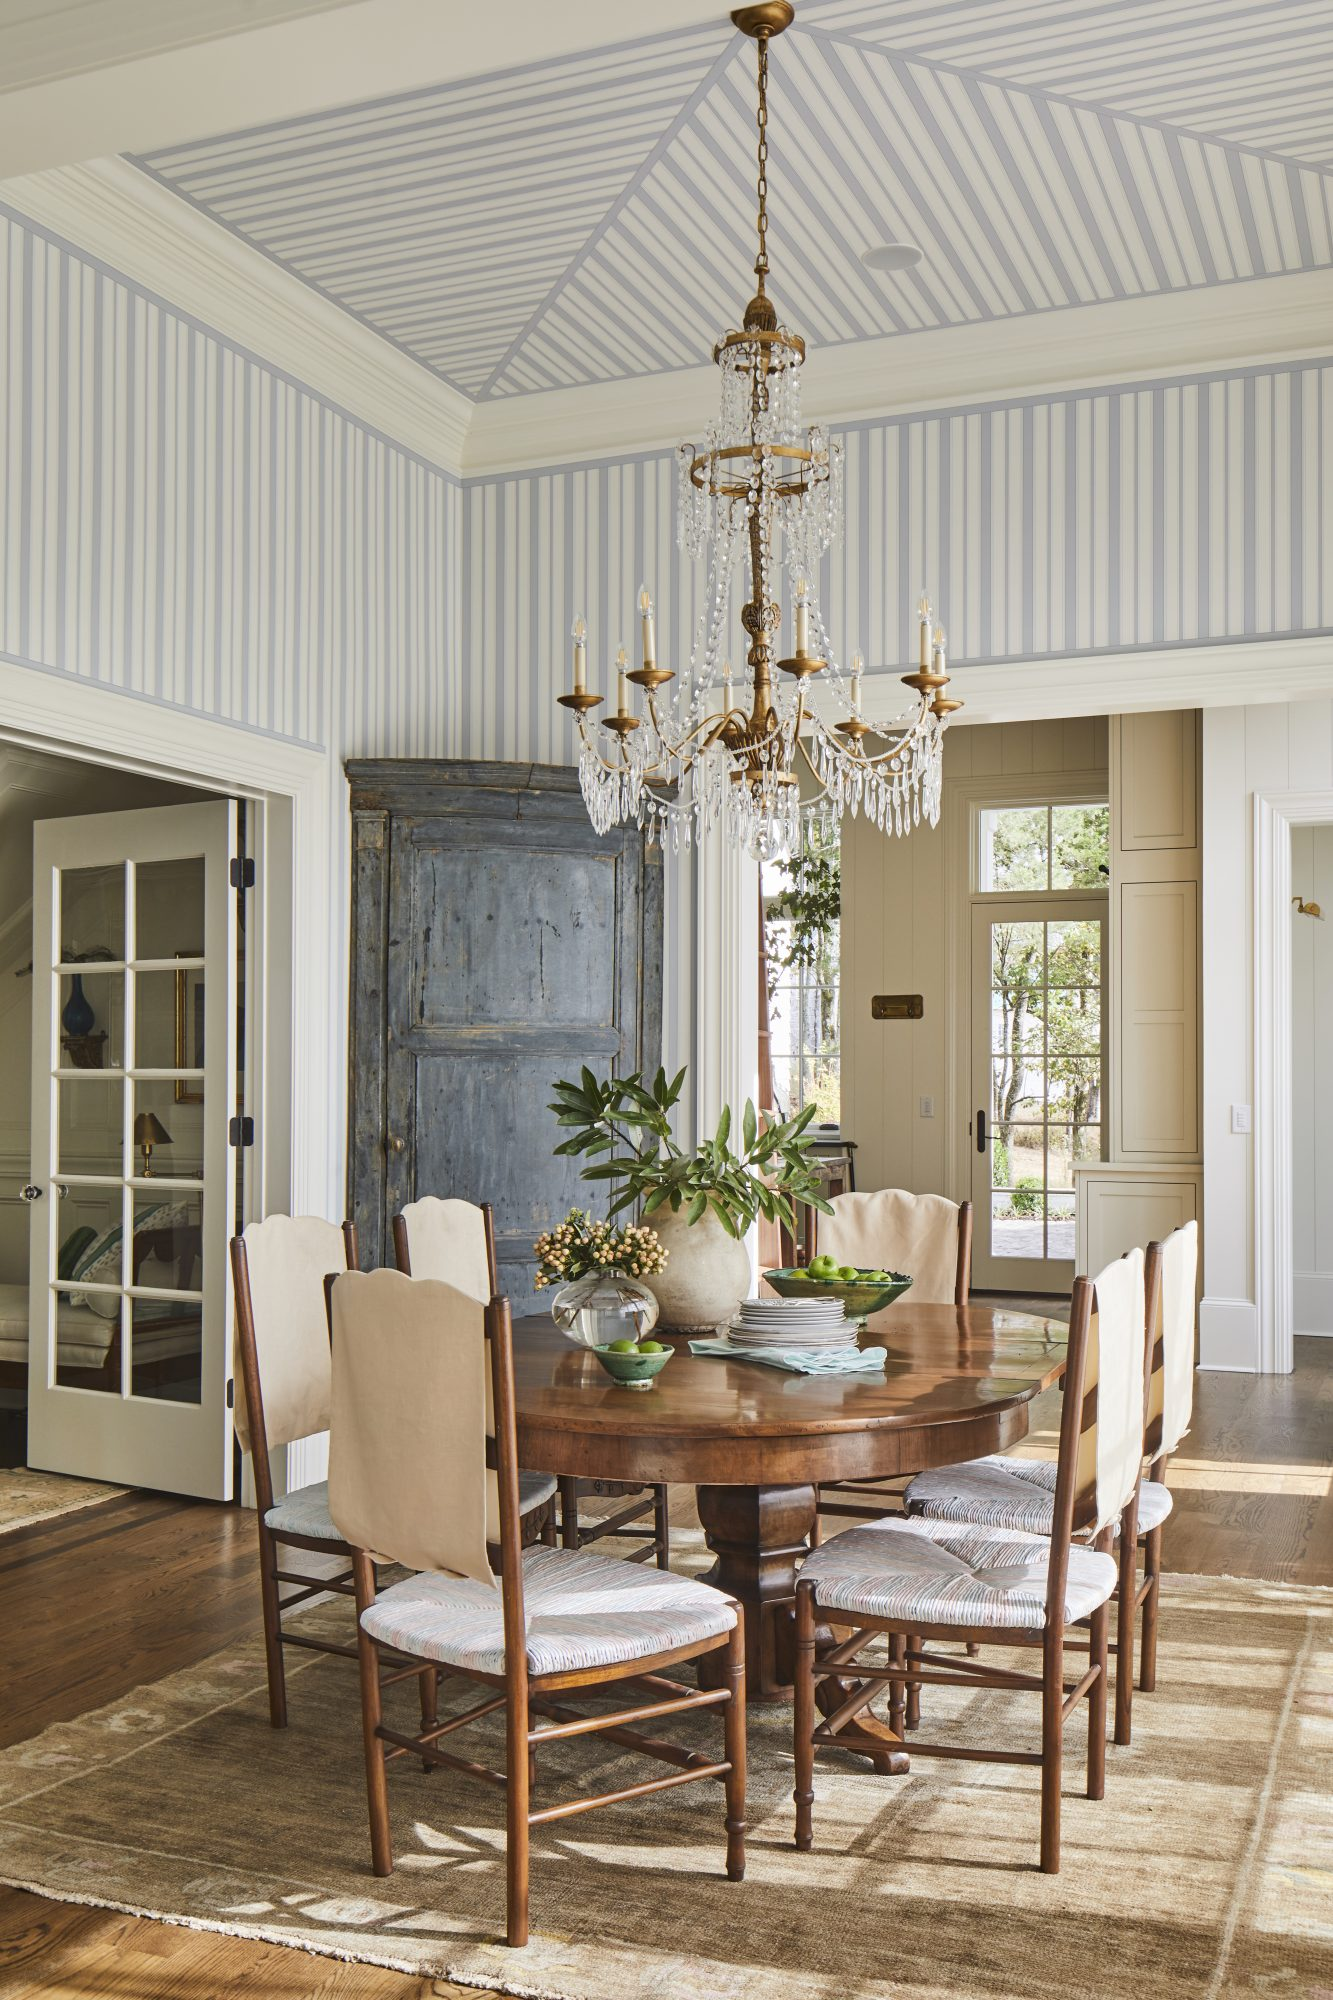 Casual Dining Room with Blue and White Striped Walls